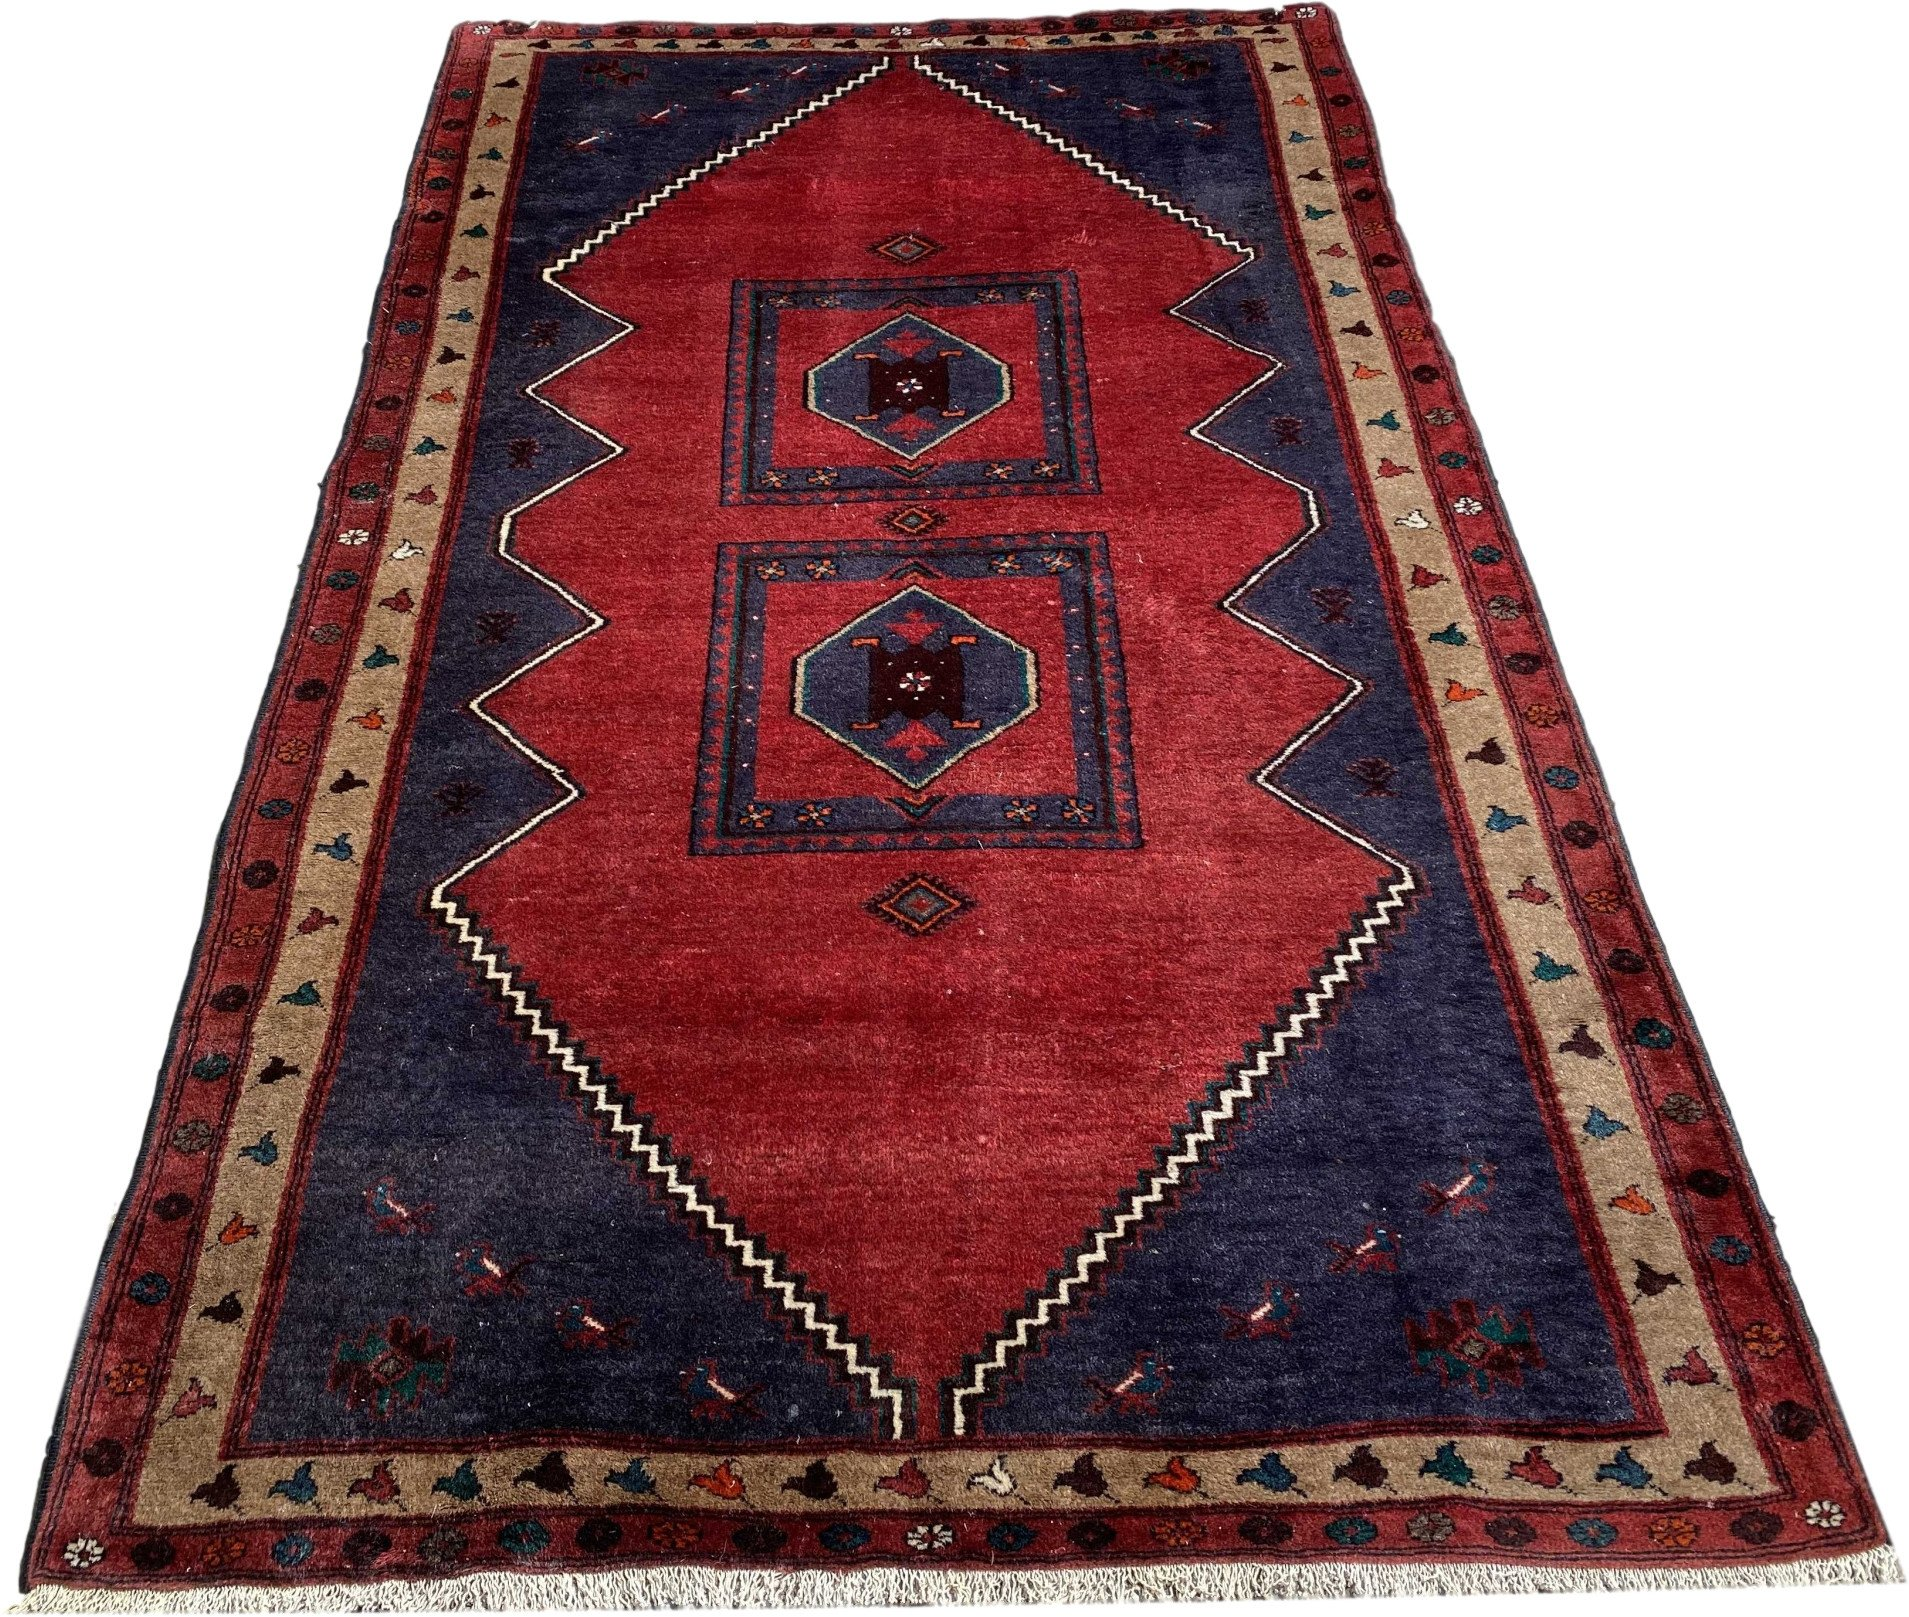 Carpet 152x250, Iran, 1930s